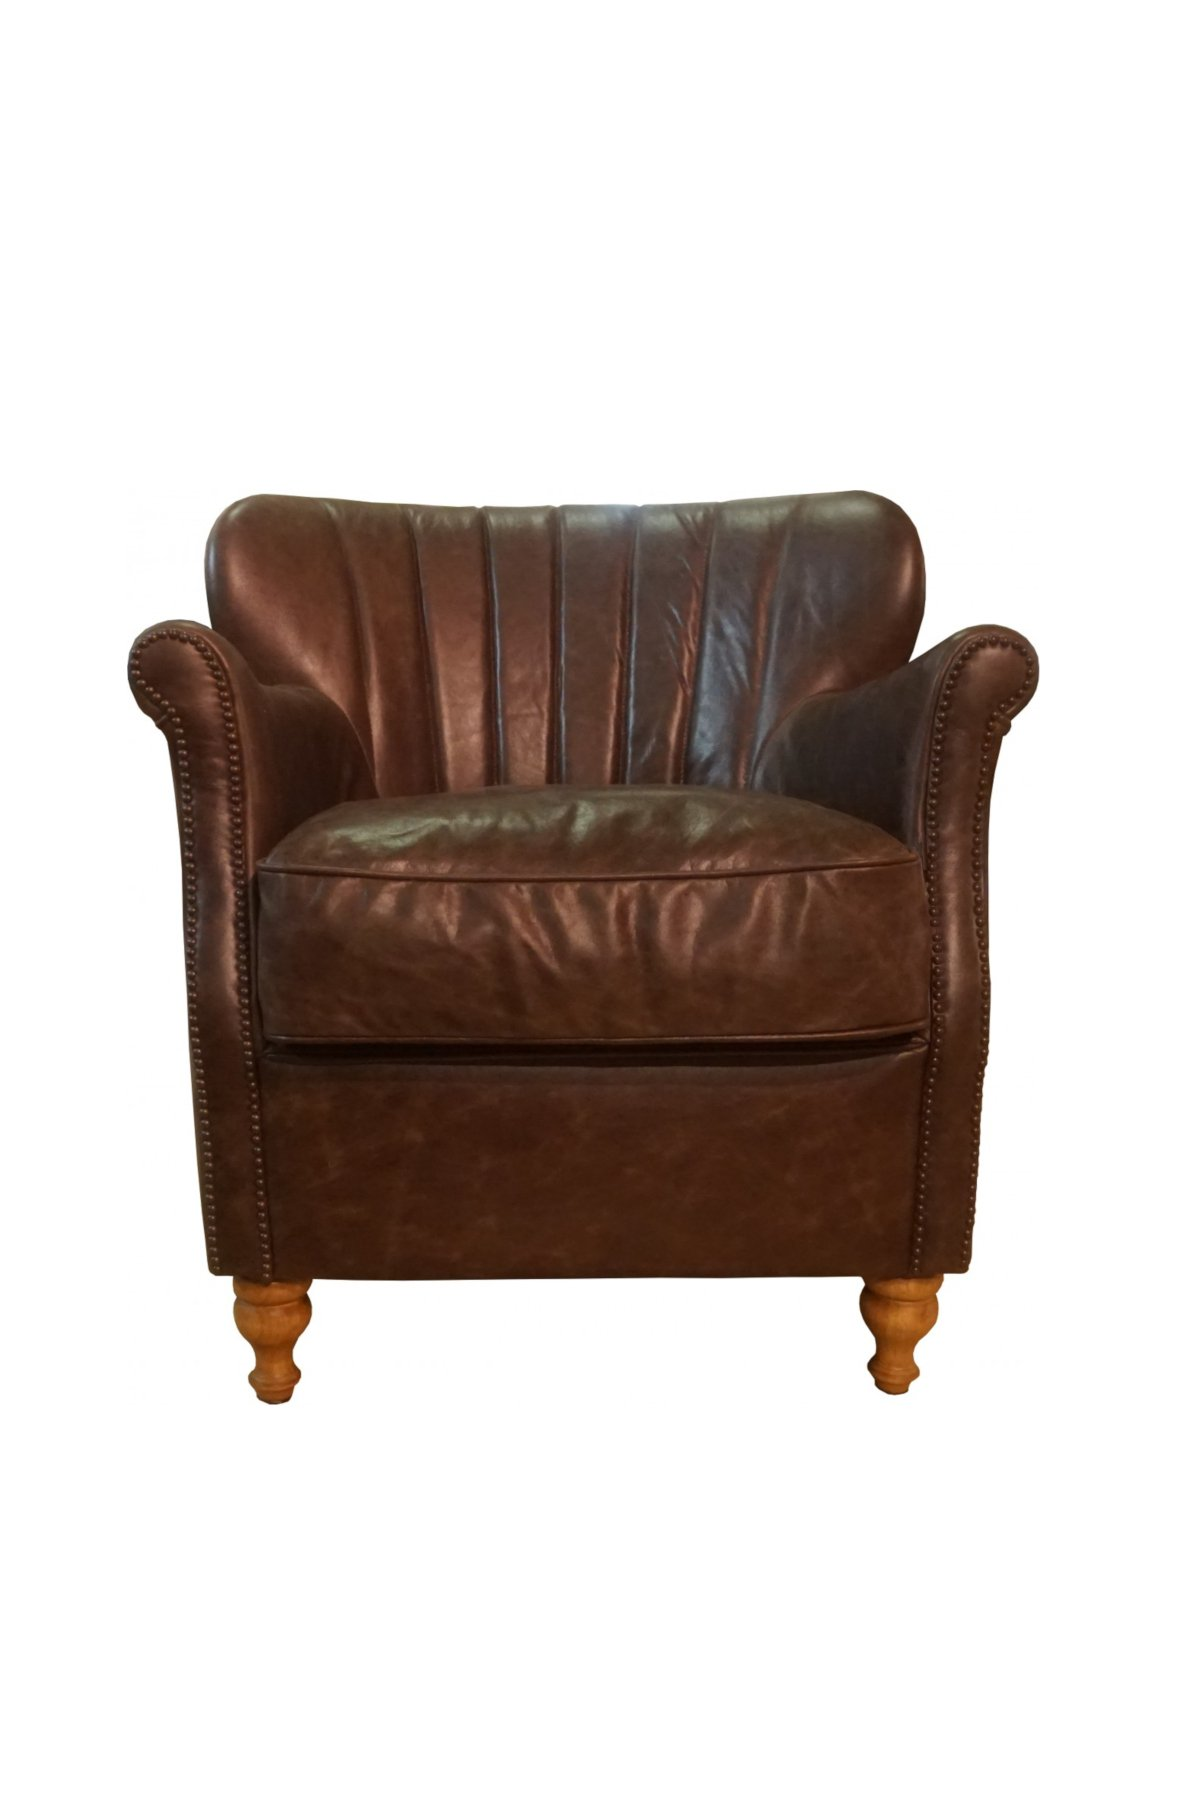 Percy Chair - Satchel Nutmeg